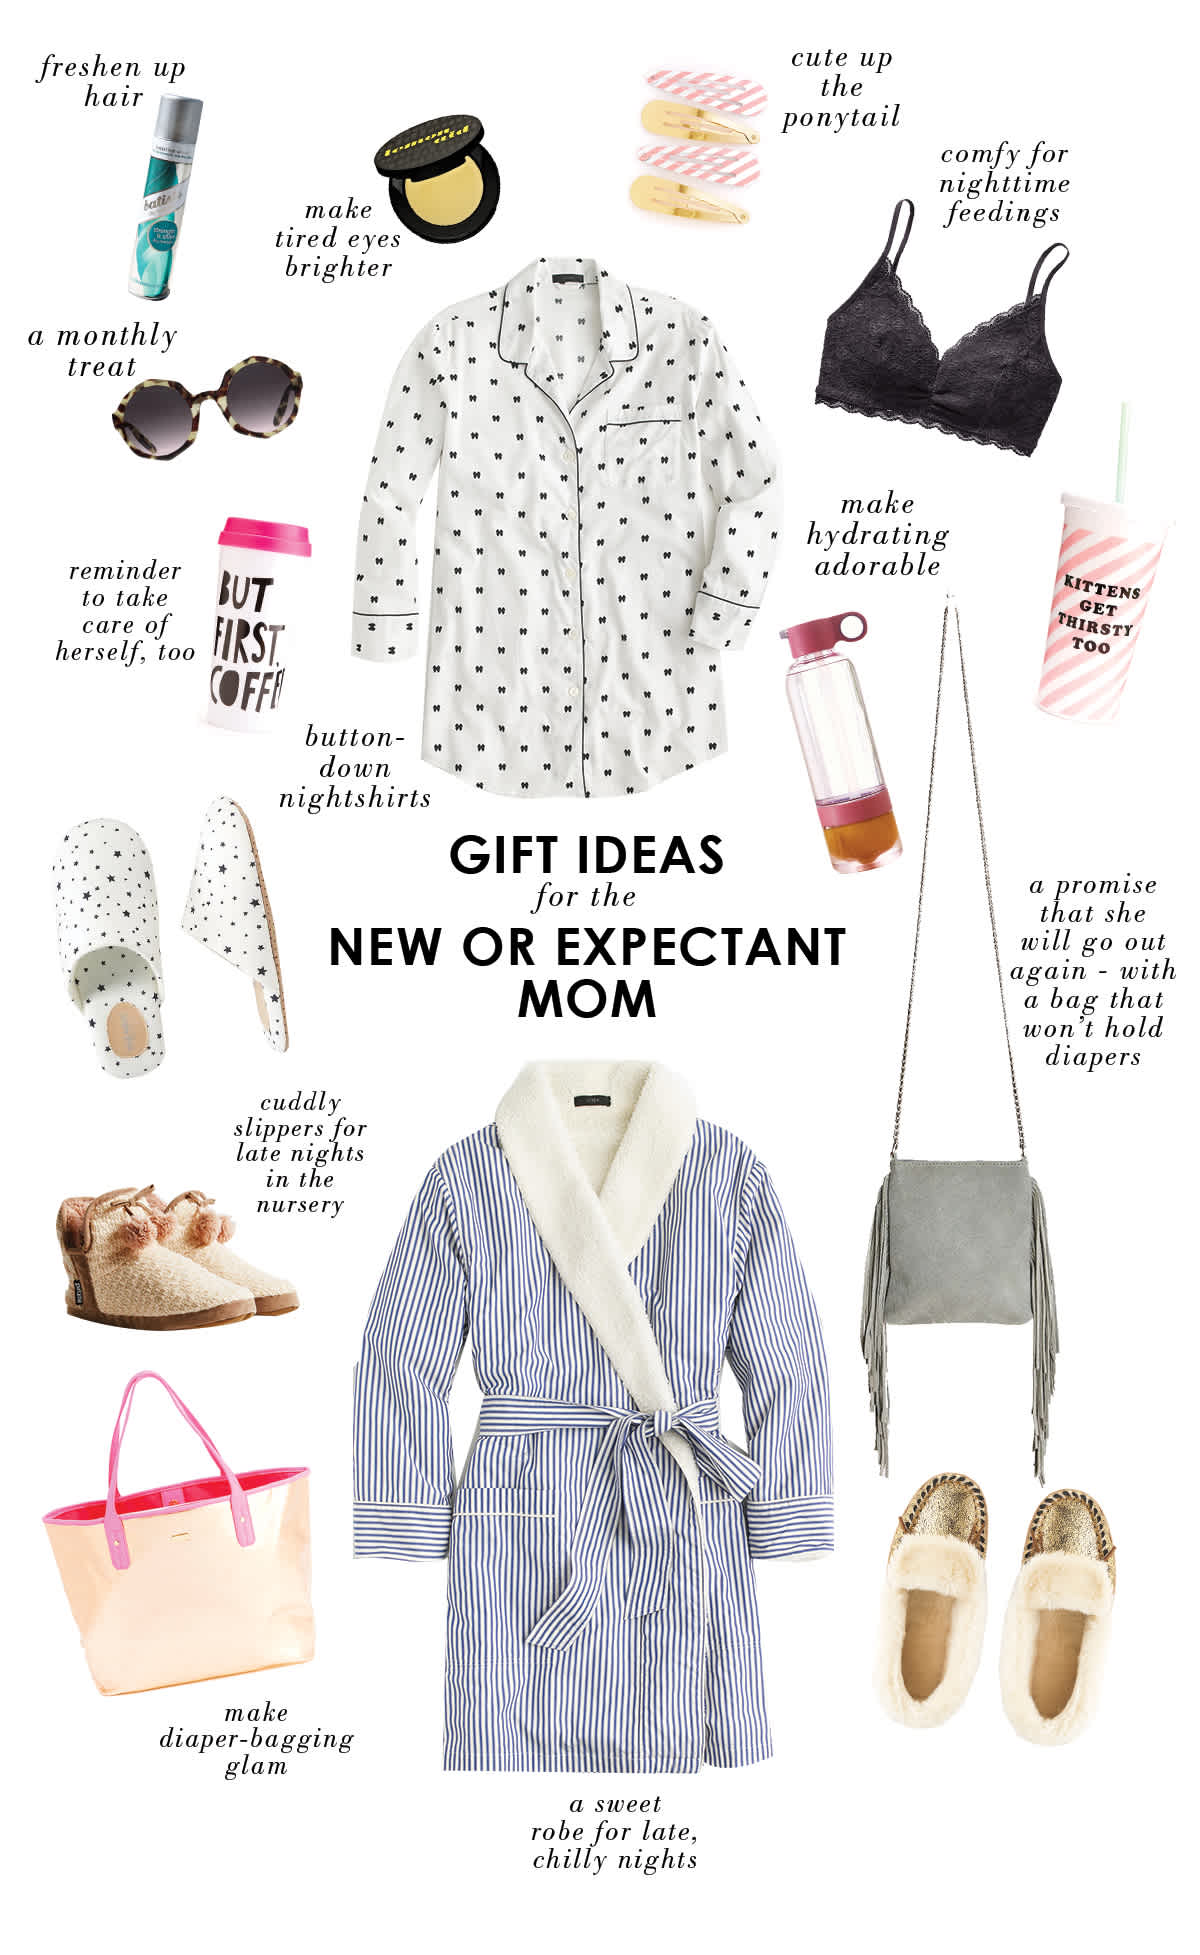 gift ideas for expectant mom